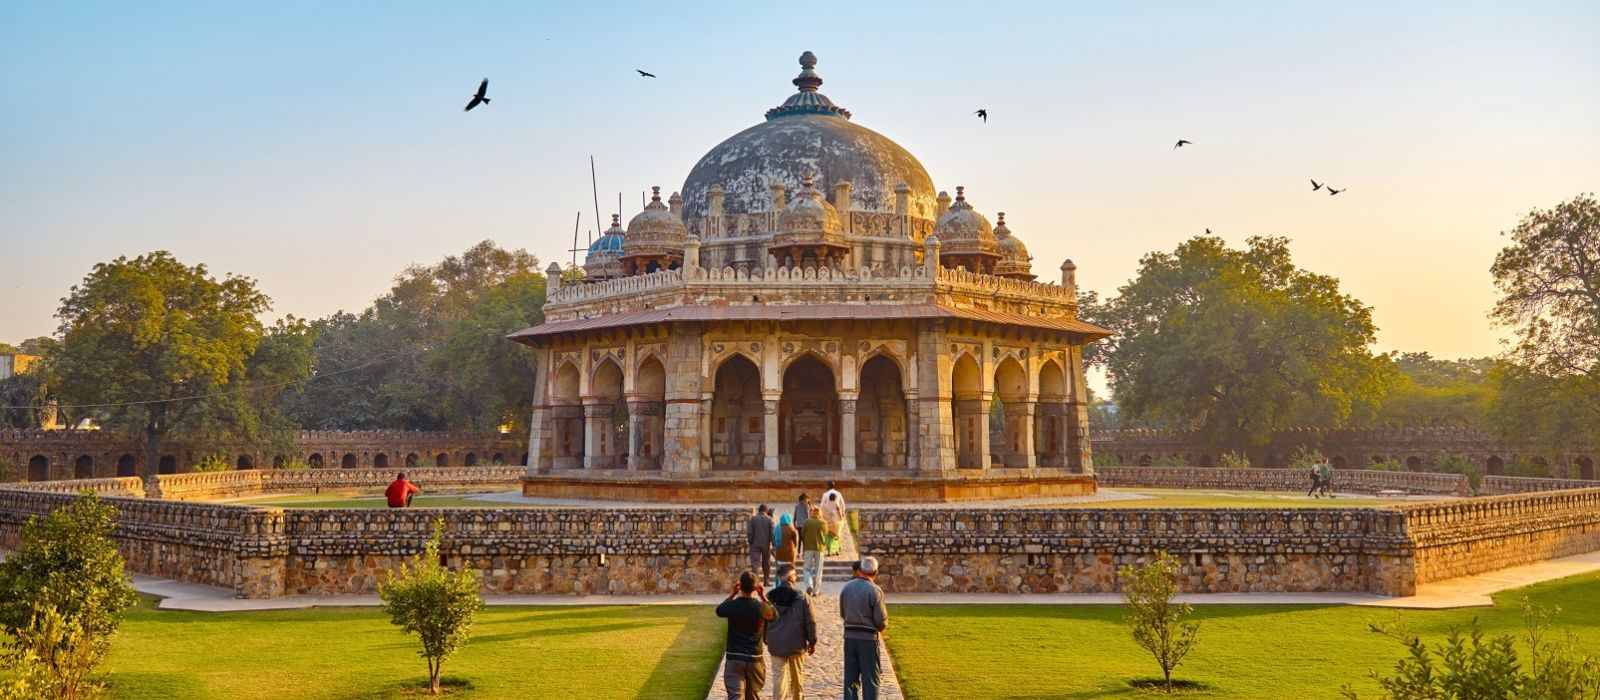 North Indian Luxury: Heritage Cities and Regal Palaces Tour Trip 3